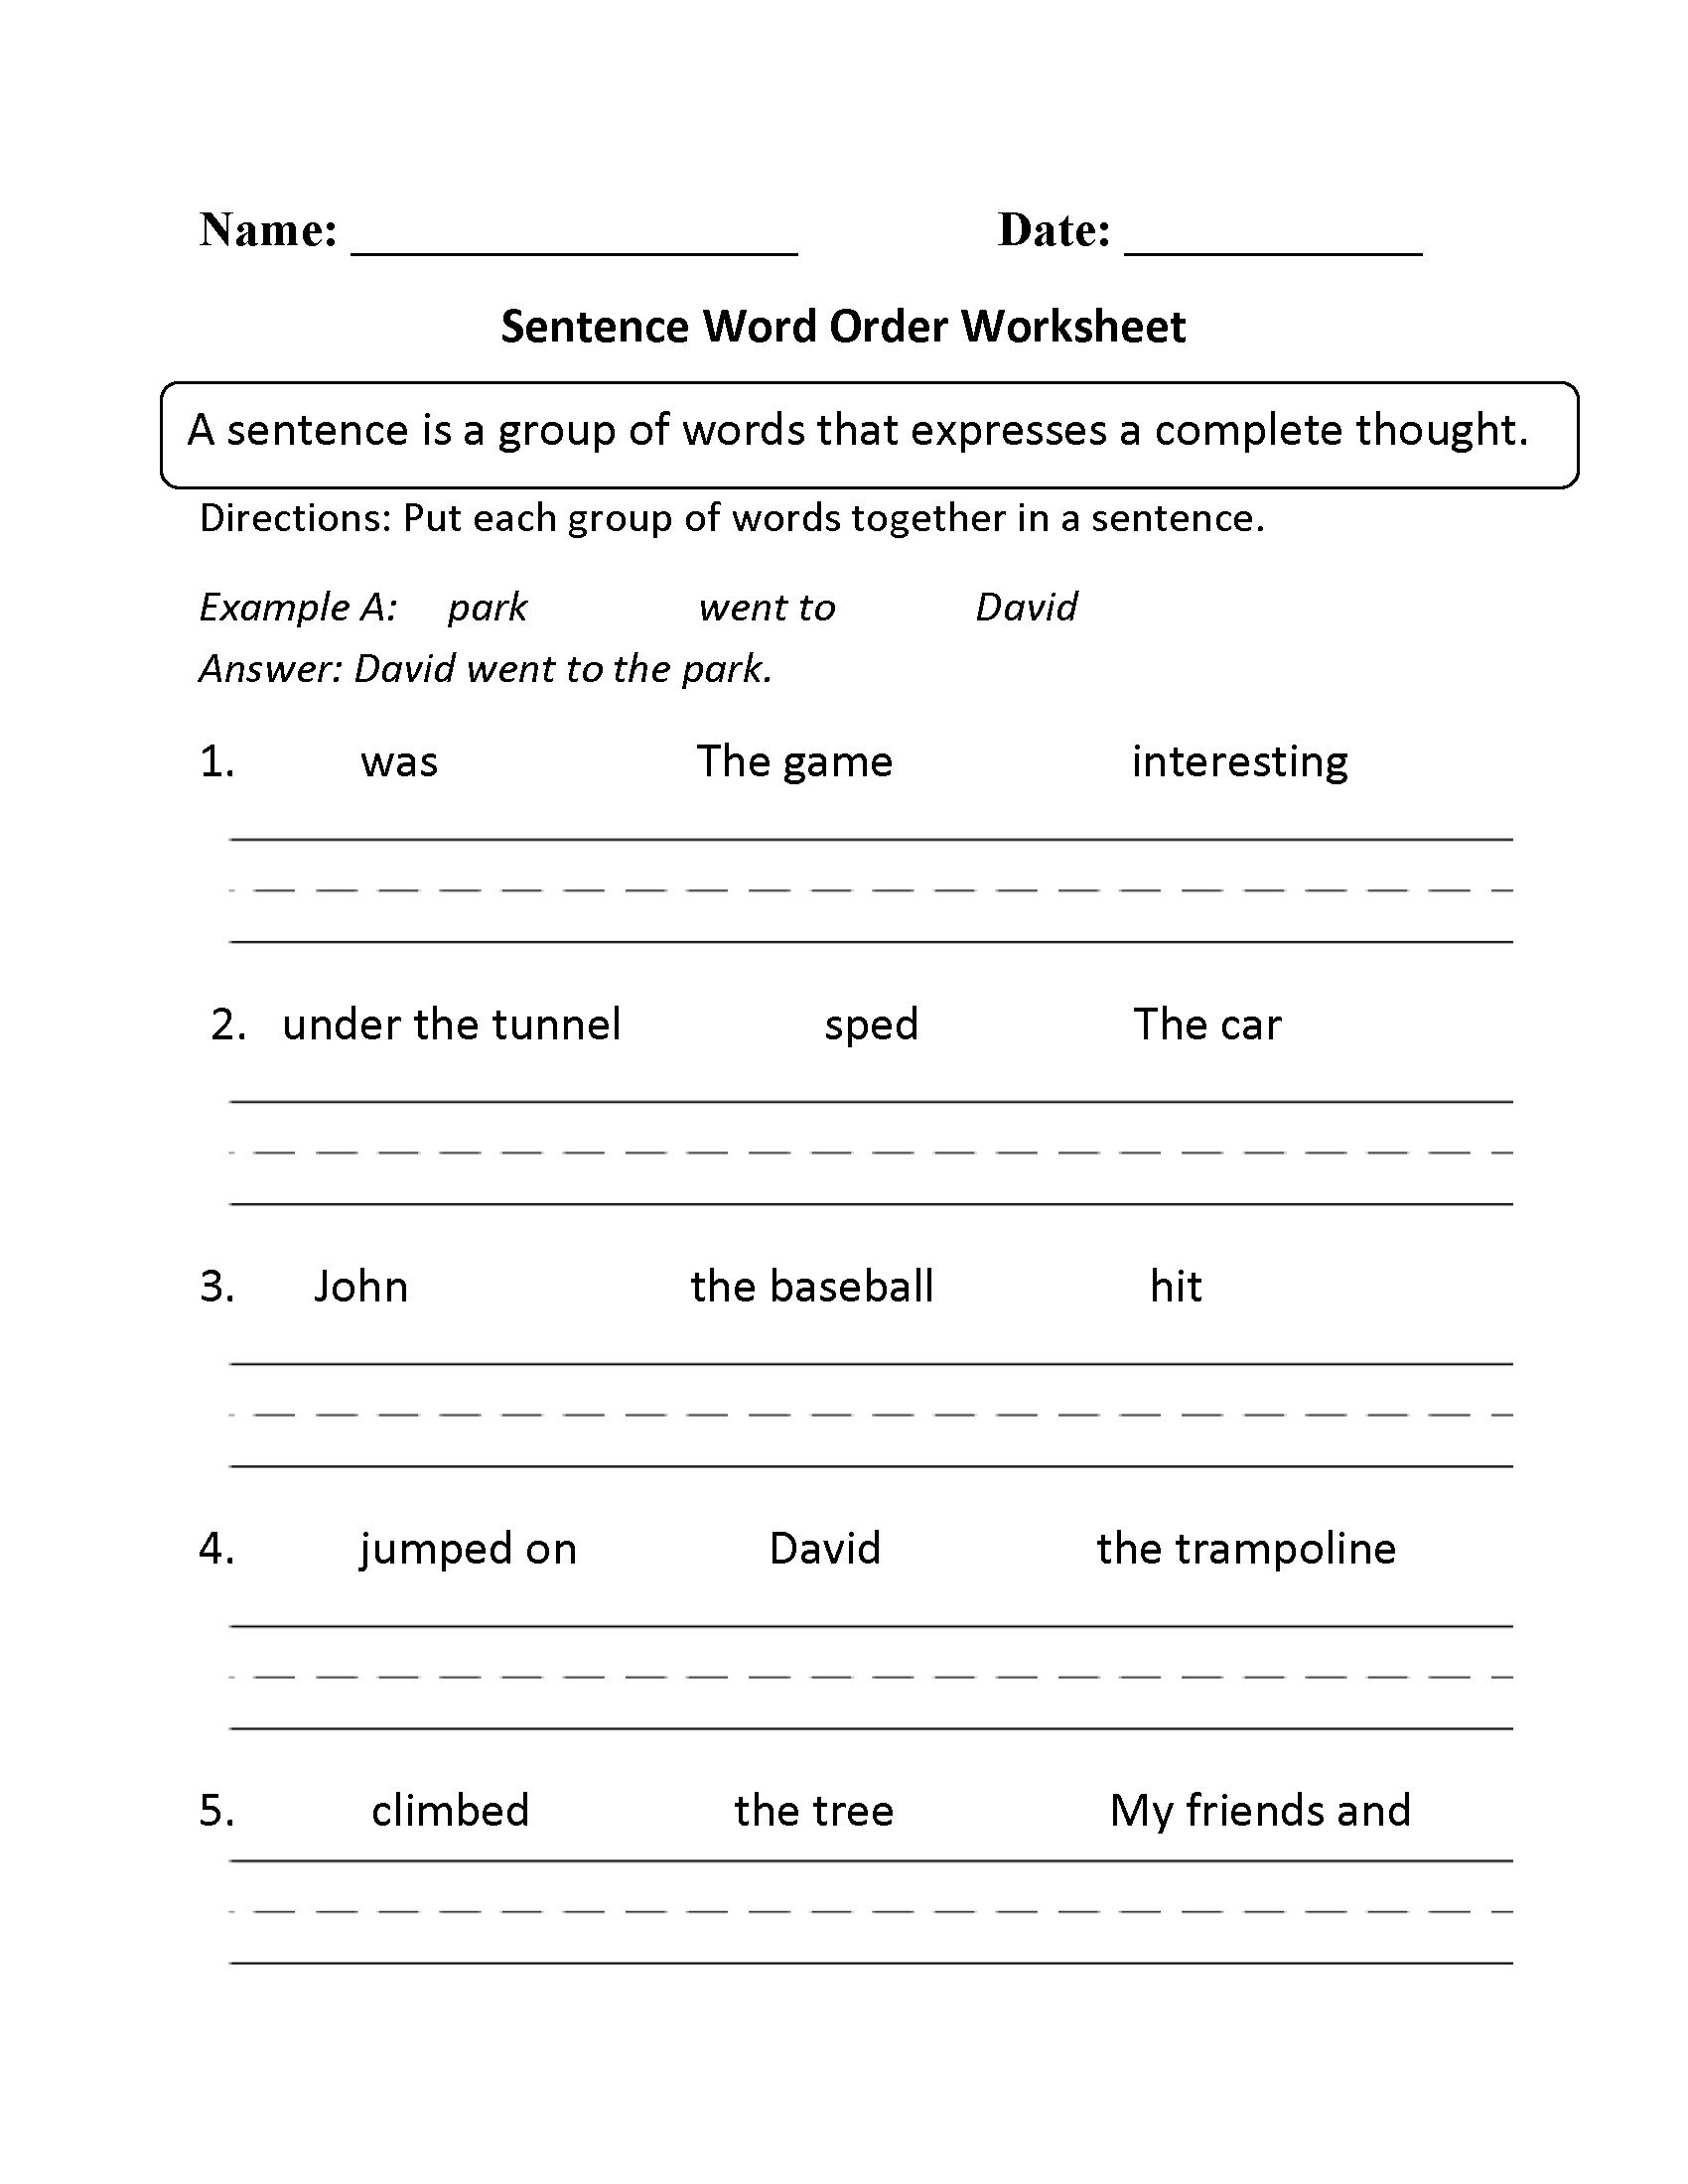 20 Free Sentence Structure Worksheets